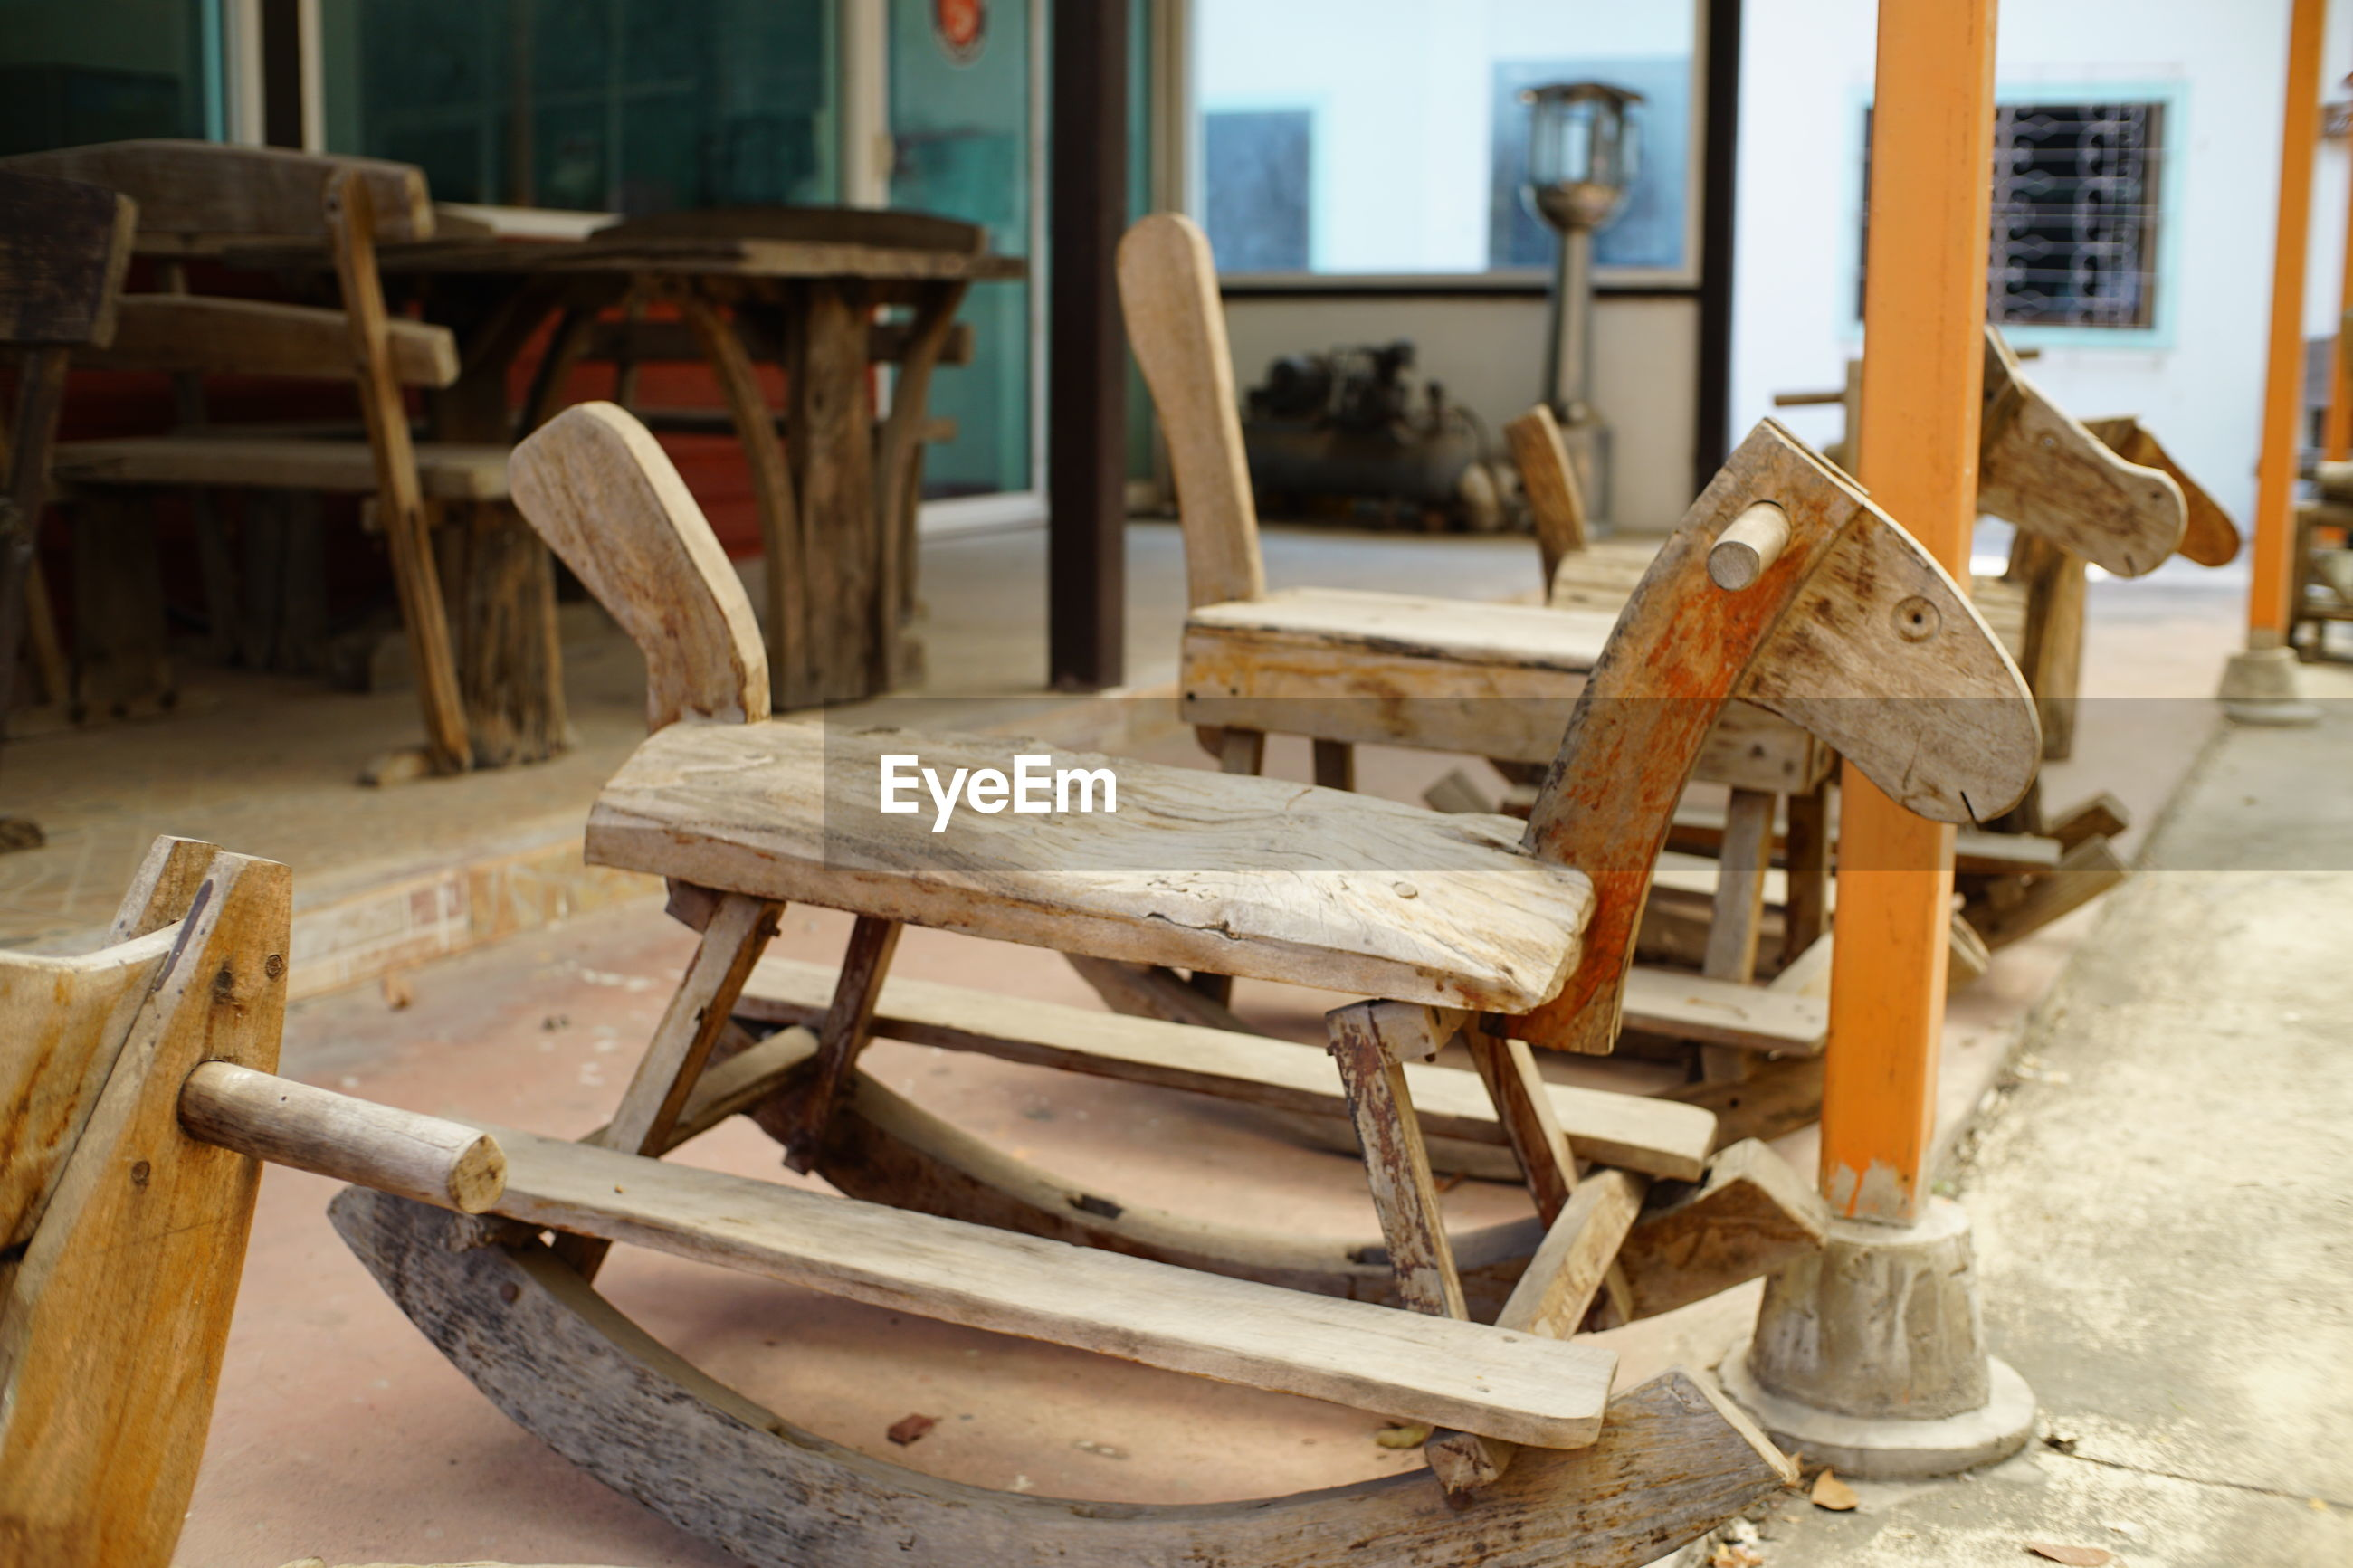 Close-up of wooden rocking chair